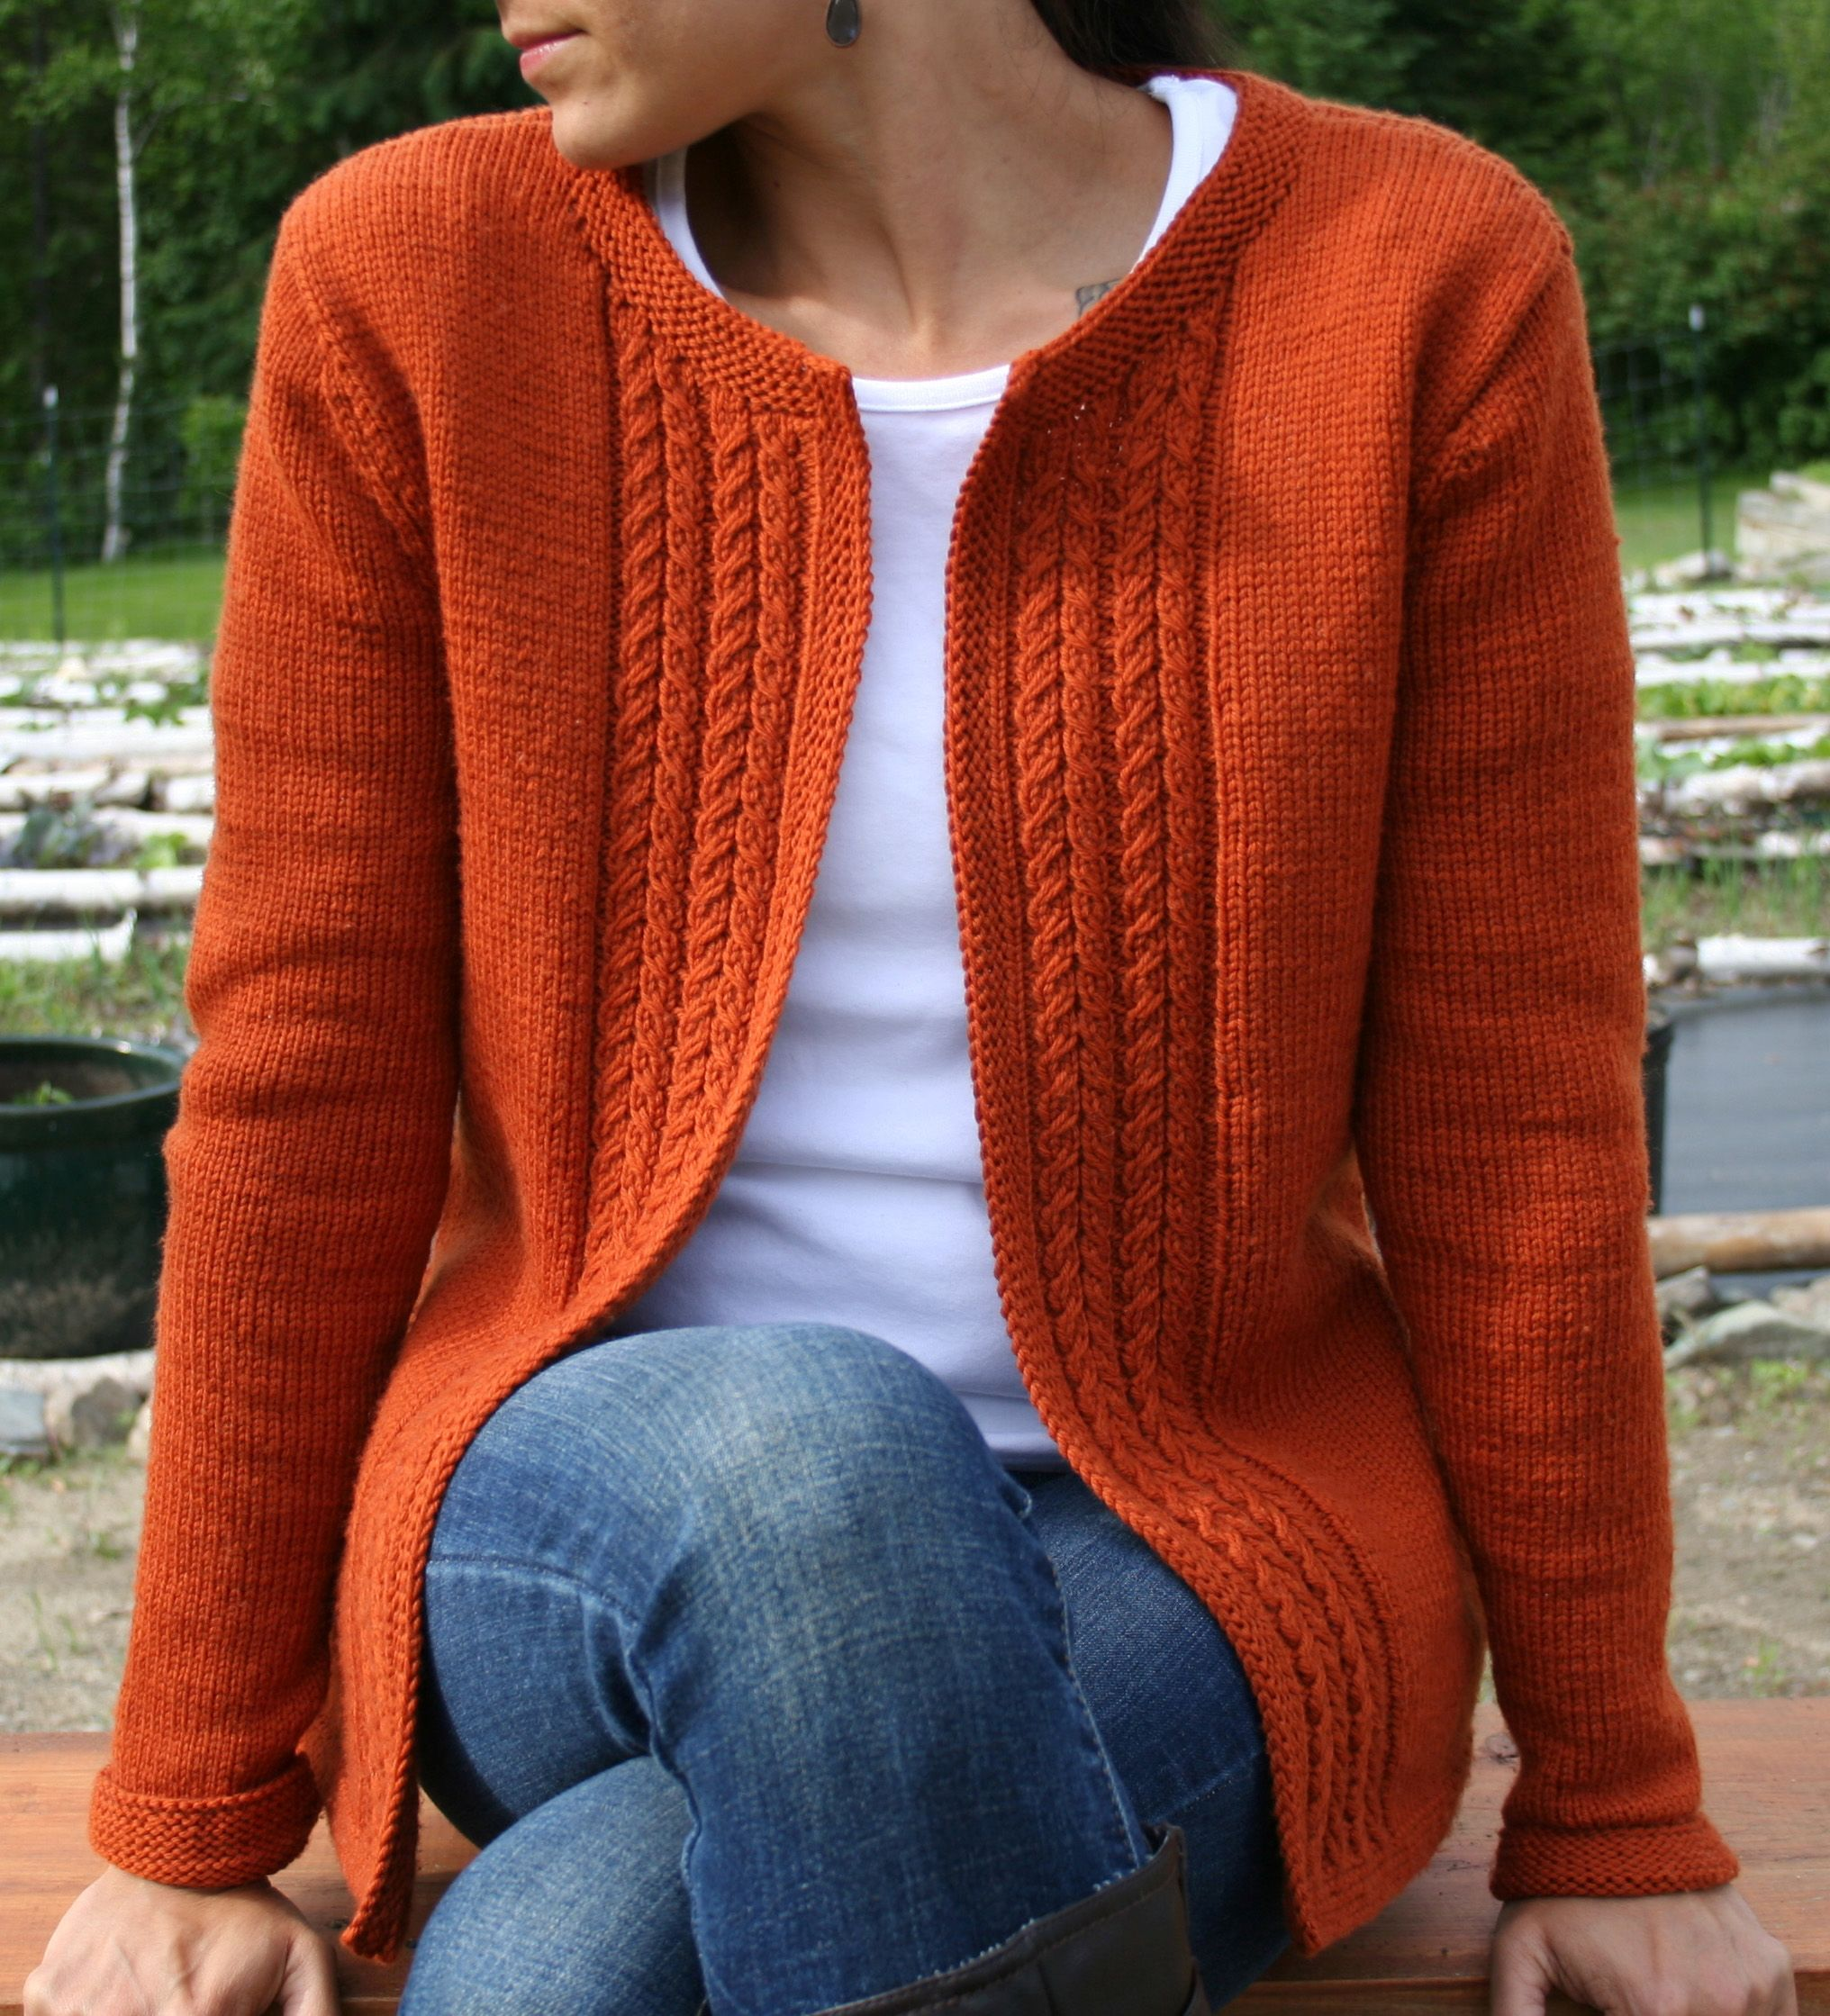 Knitting Pattern Women s Sweater : Casual Cardigan Pattern - Knitting Patterns and Crochet Patterns from KnitPic...